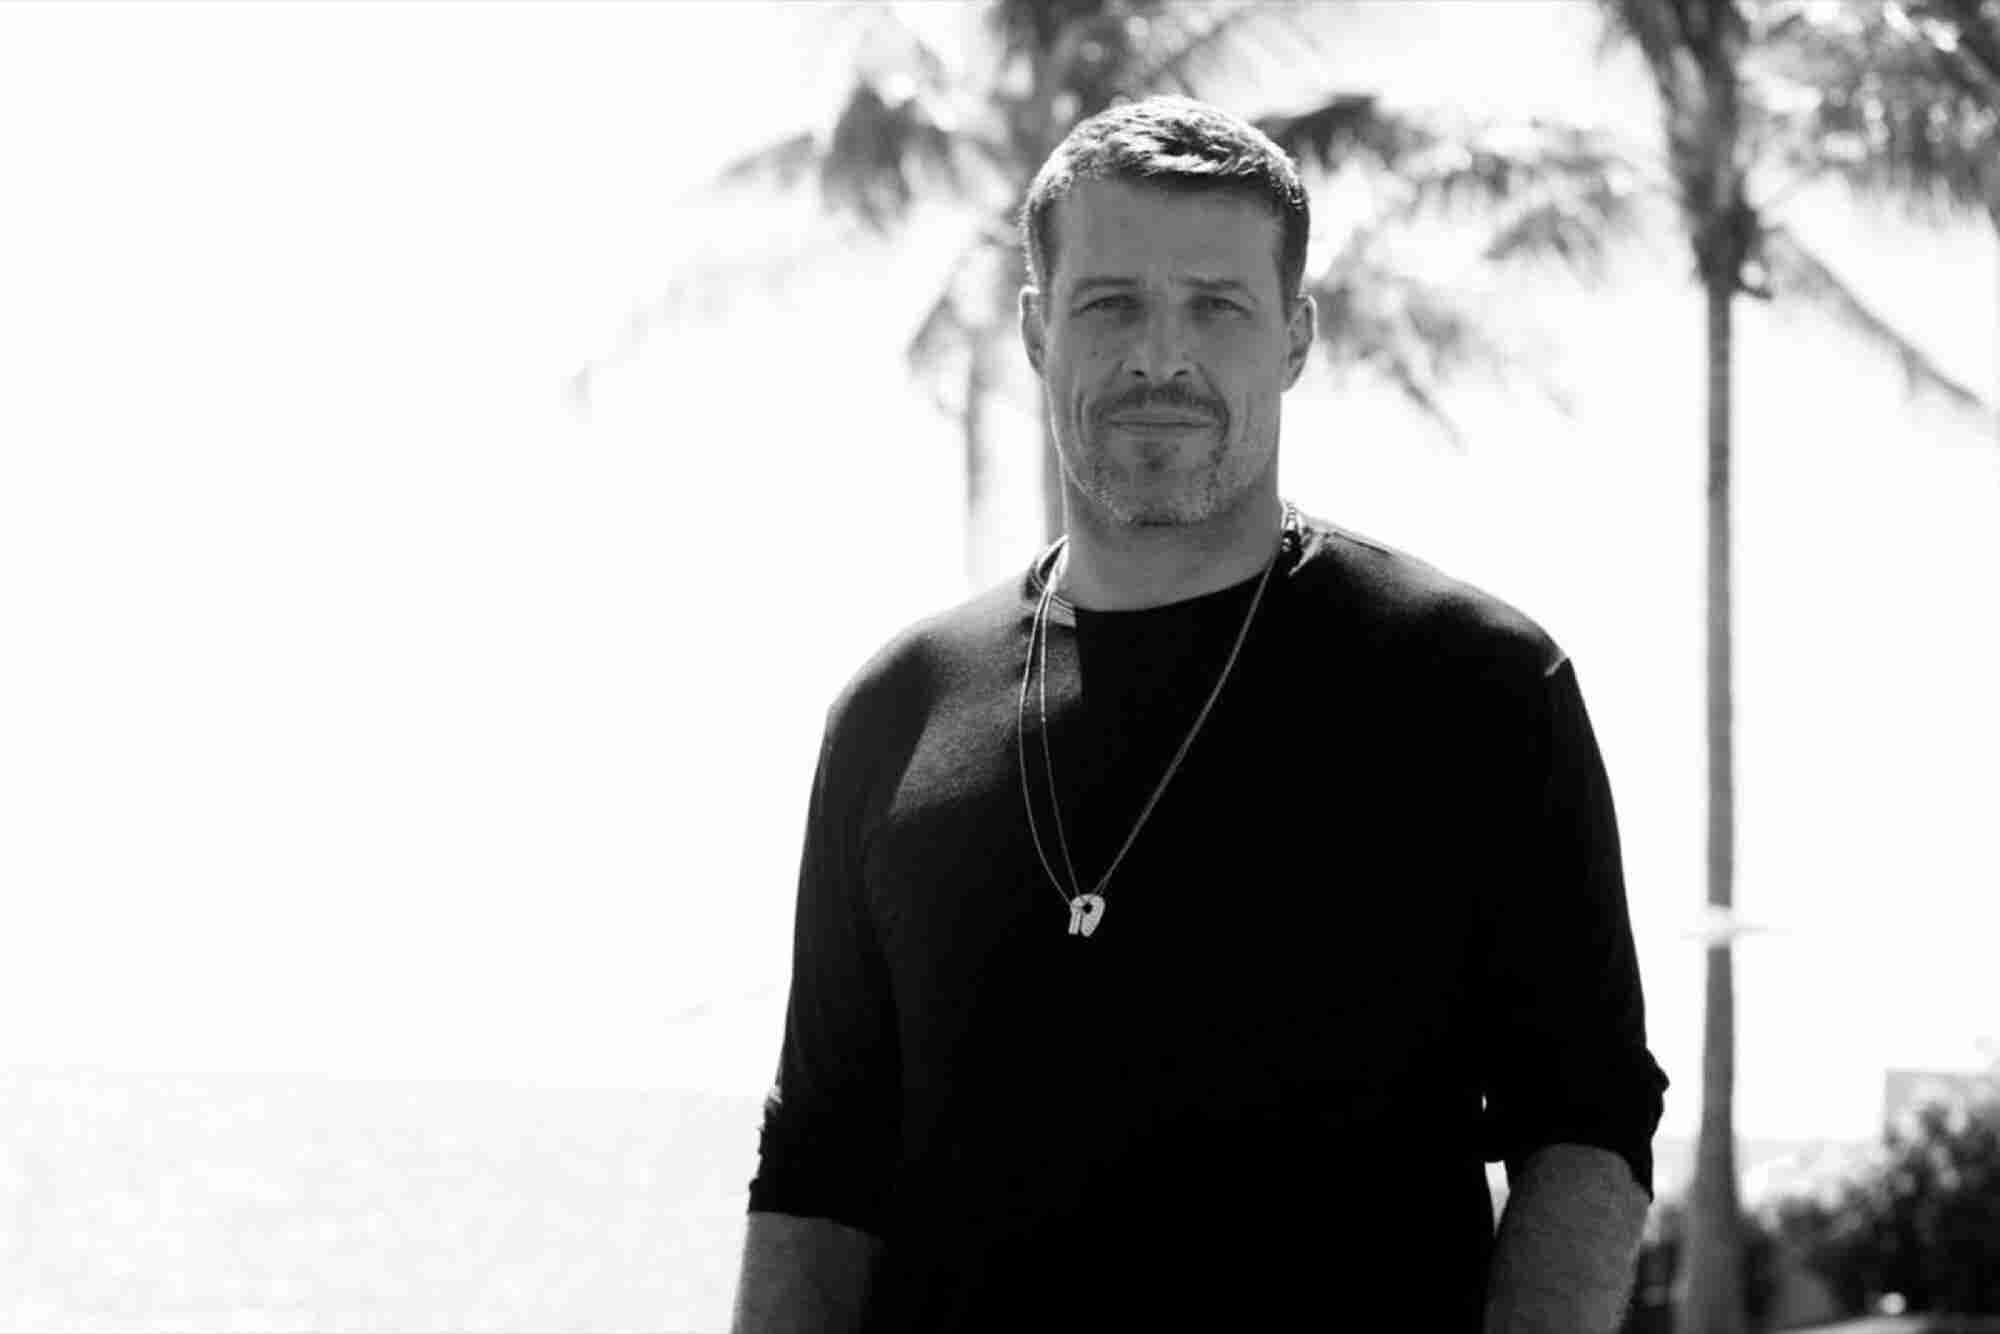 Tony Robbins: This Incredible Money Machine Works While You Sleep